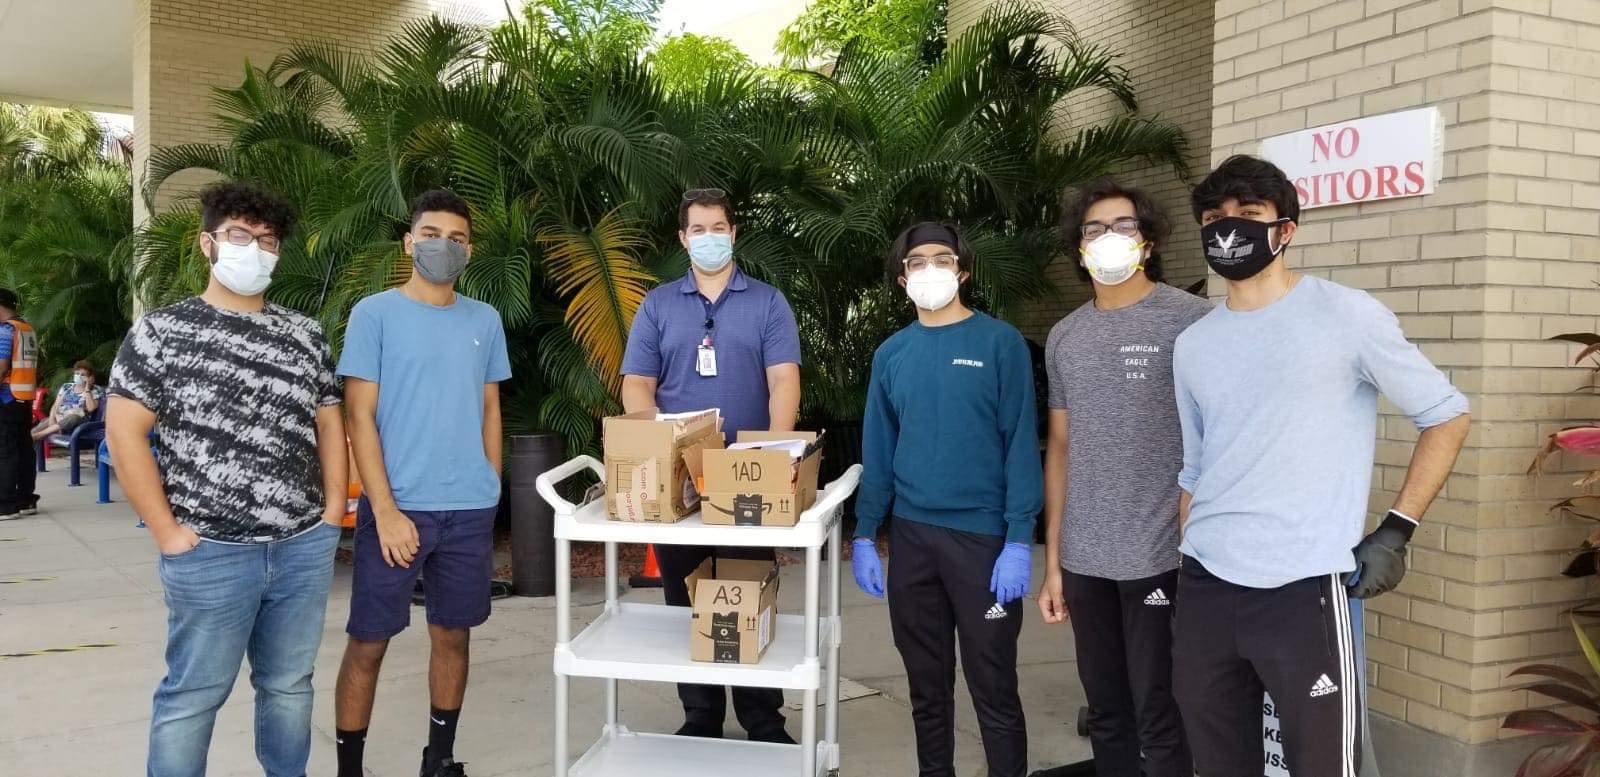 Our FL volunteers, Shameer Kazi, Manish Batta, Neep Patel, Rohan Kommireddy, and Shray Mehra, donated 23 devices to the James A. Haley Veterans' Hospital in Tampa, FL! These devices will help their veterans access online medical care from home and stay out of potentially infectious waiting rooms.